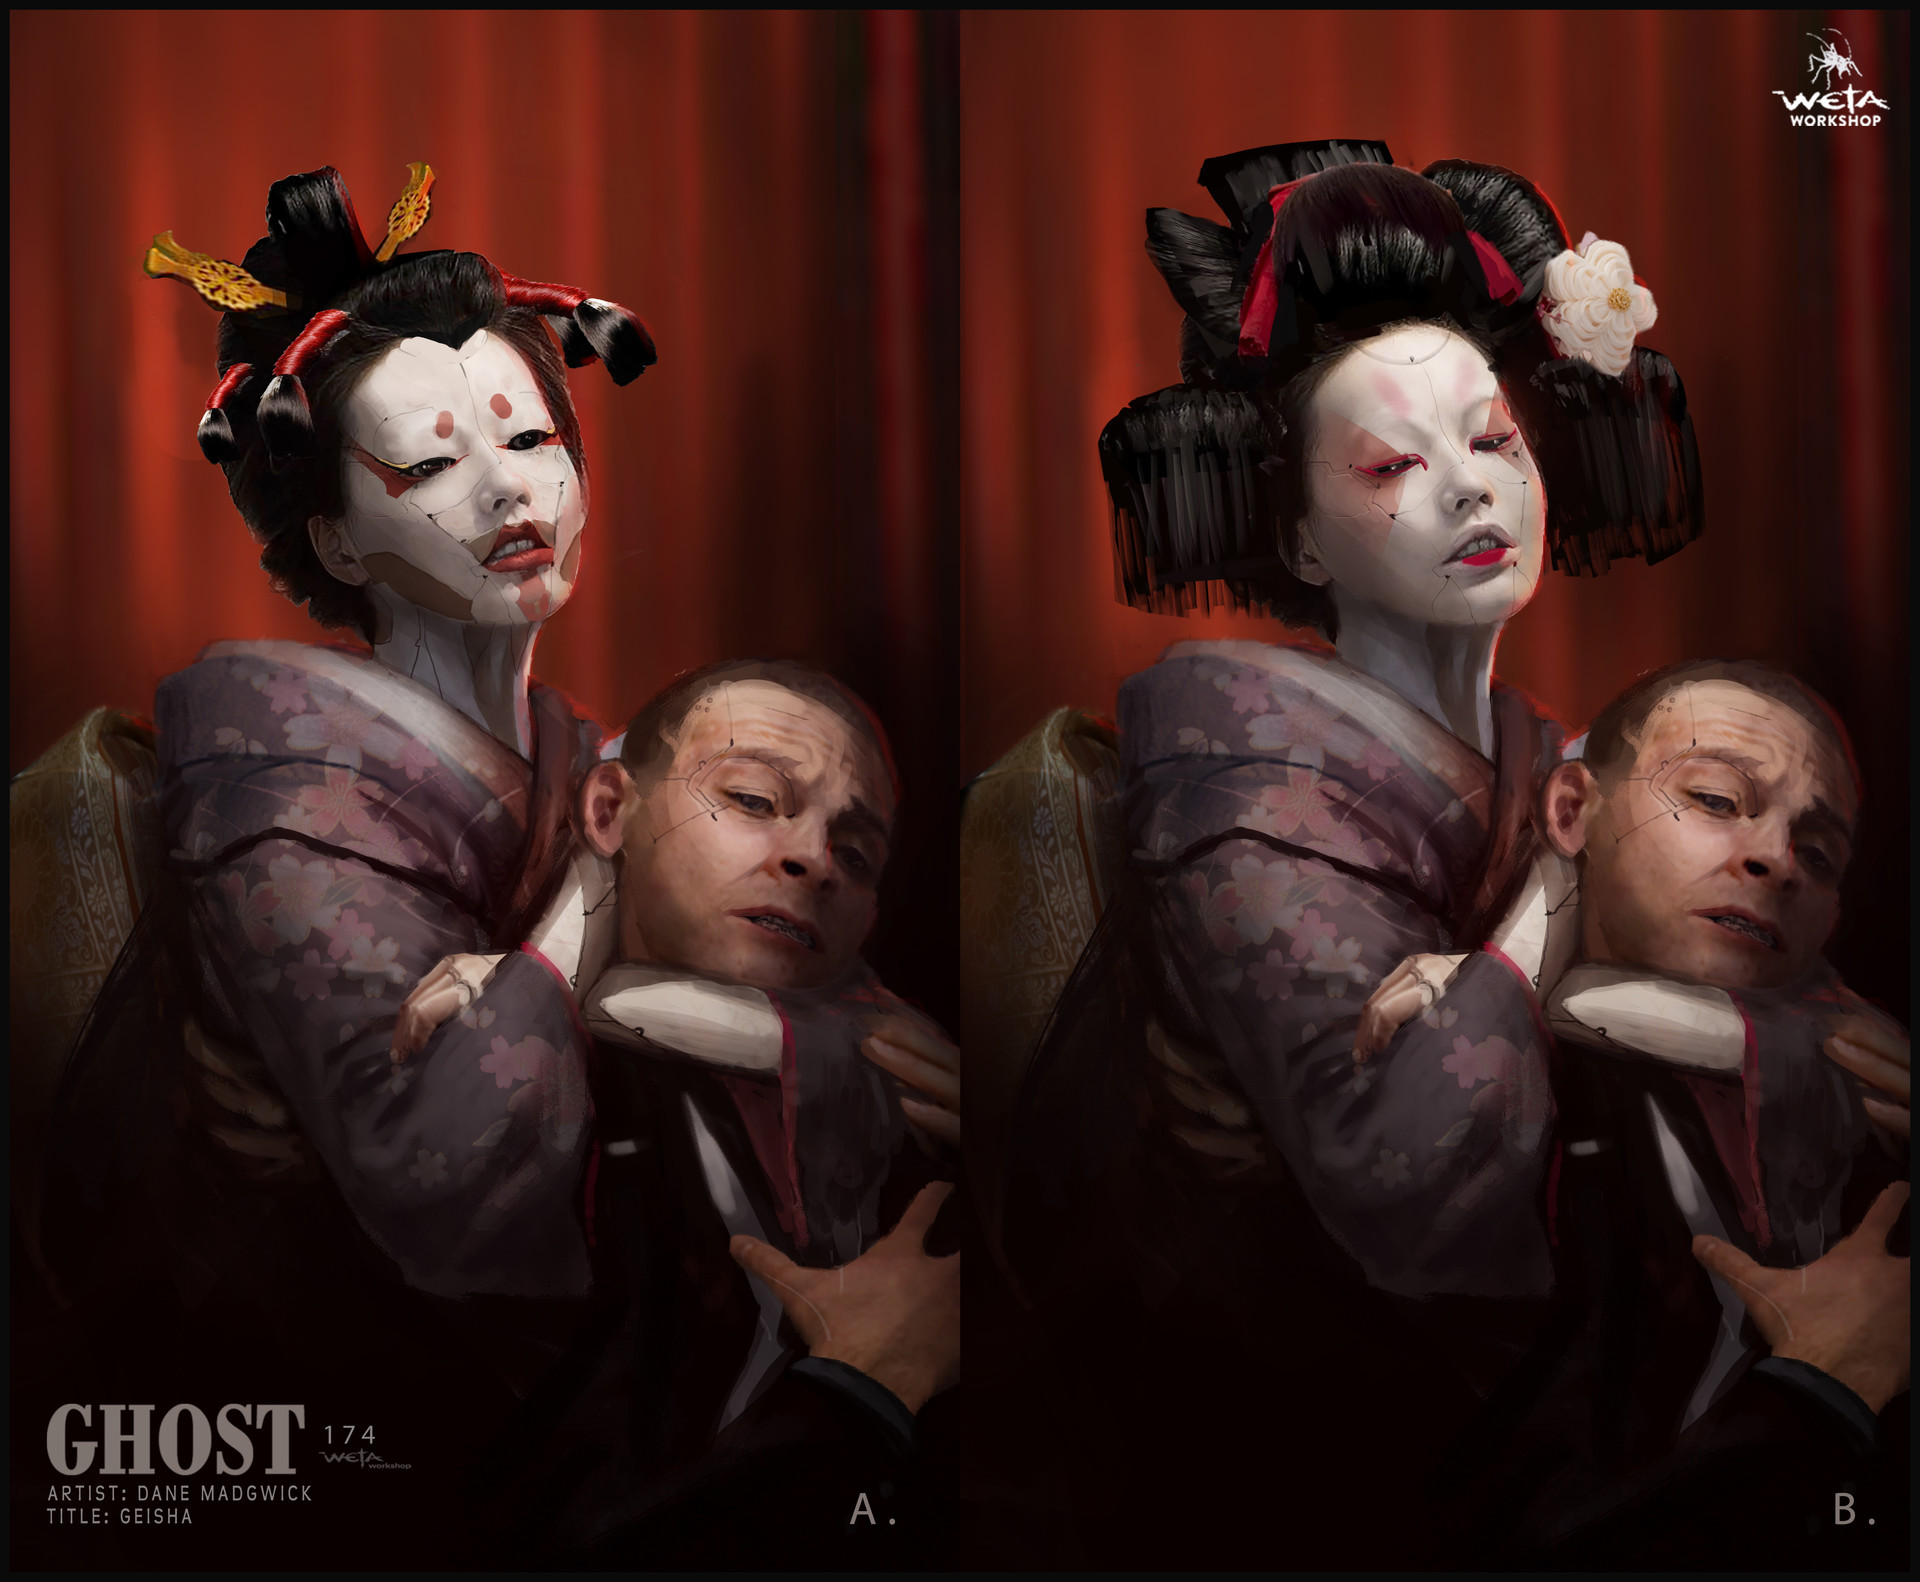 Weta workshop design studio 0174 gits geisha dm ks note left image only